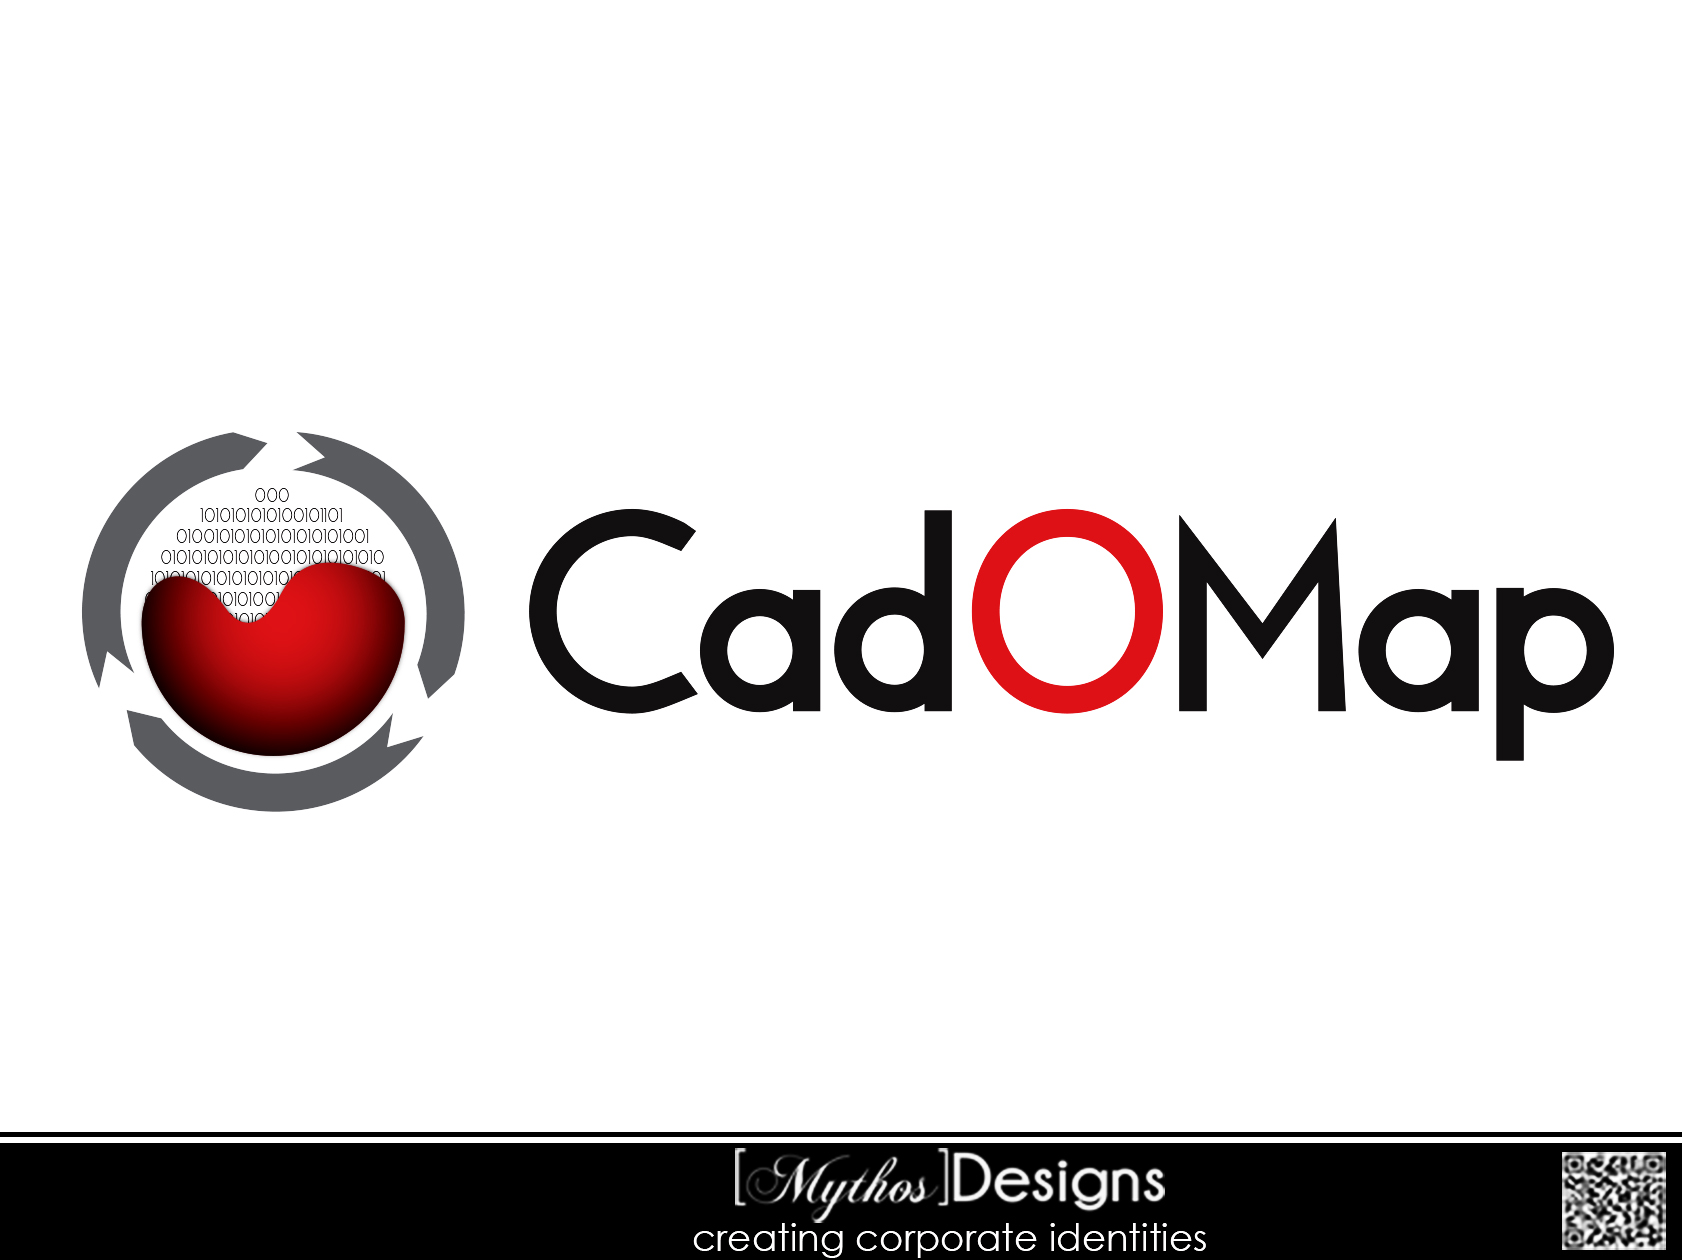 Logo Design by Mythos Designs - Entry No. 78 in the Logo Design Contest Captivating Logo Design for CadOMap software product.